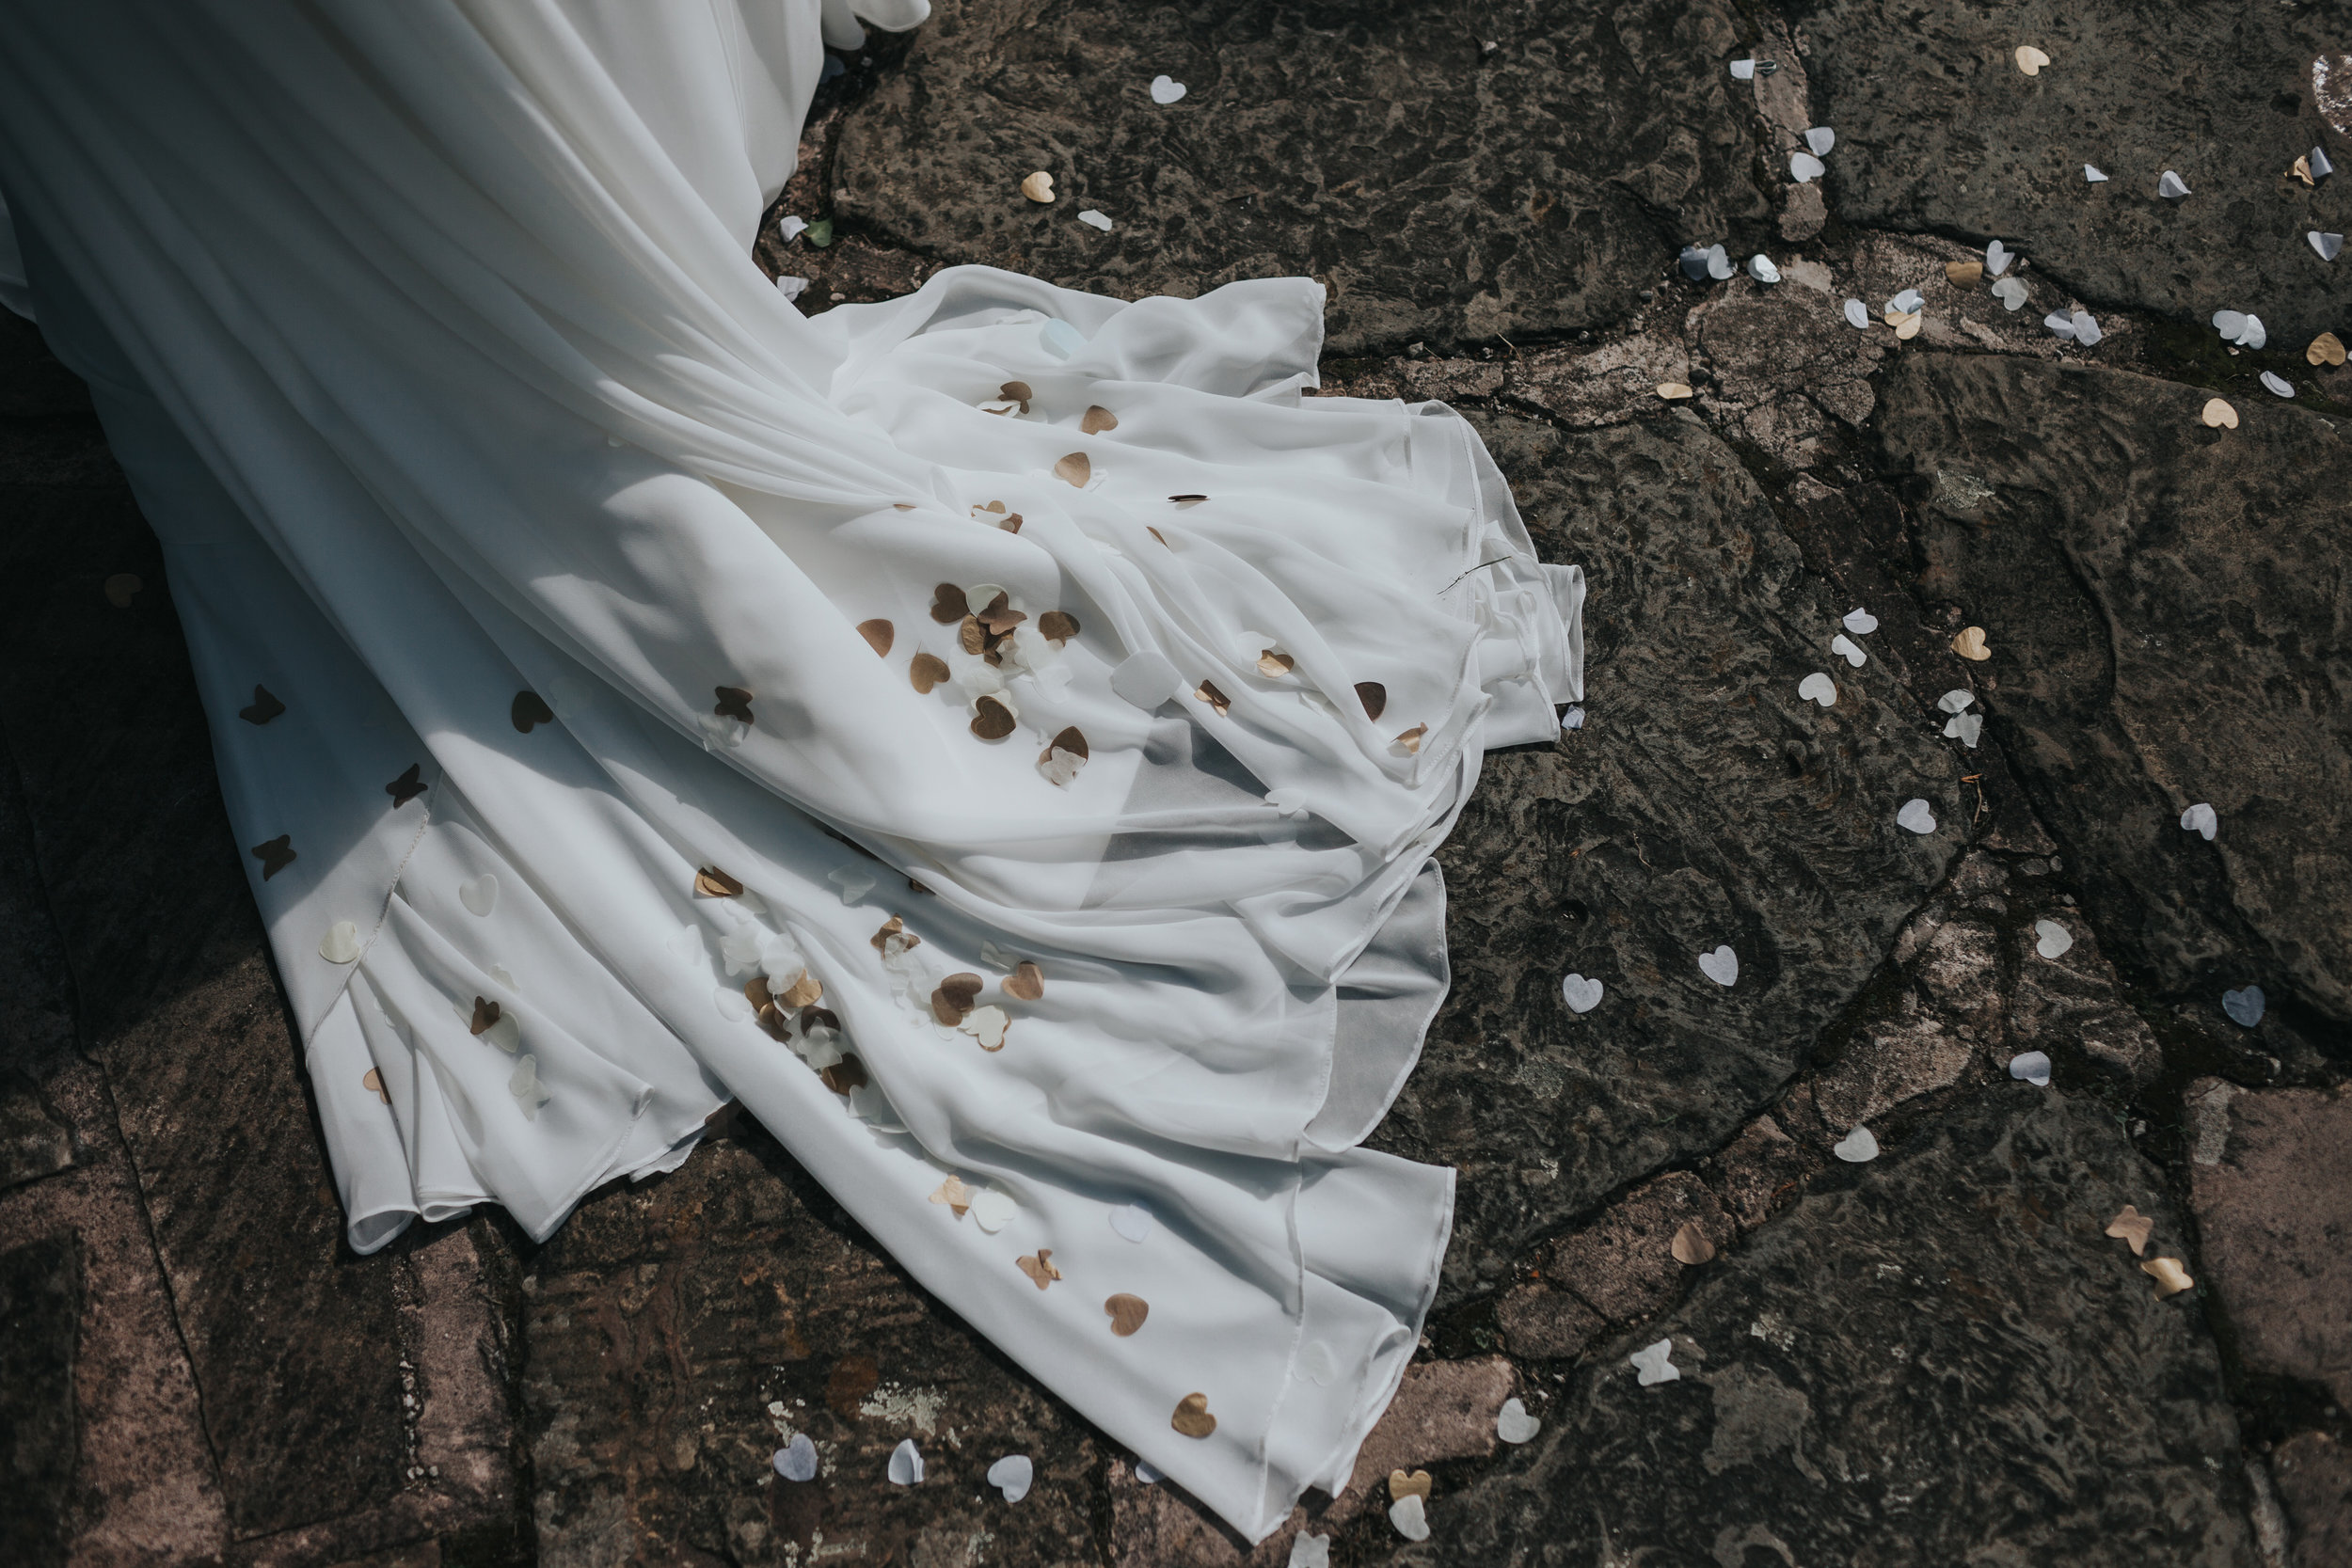 The trail of the Brides wedding dress is covered in heart shaped confetti.